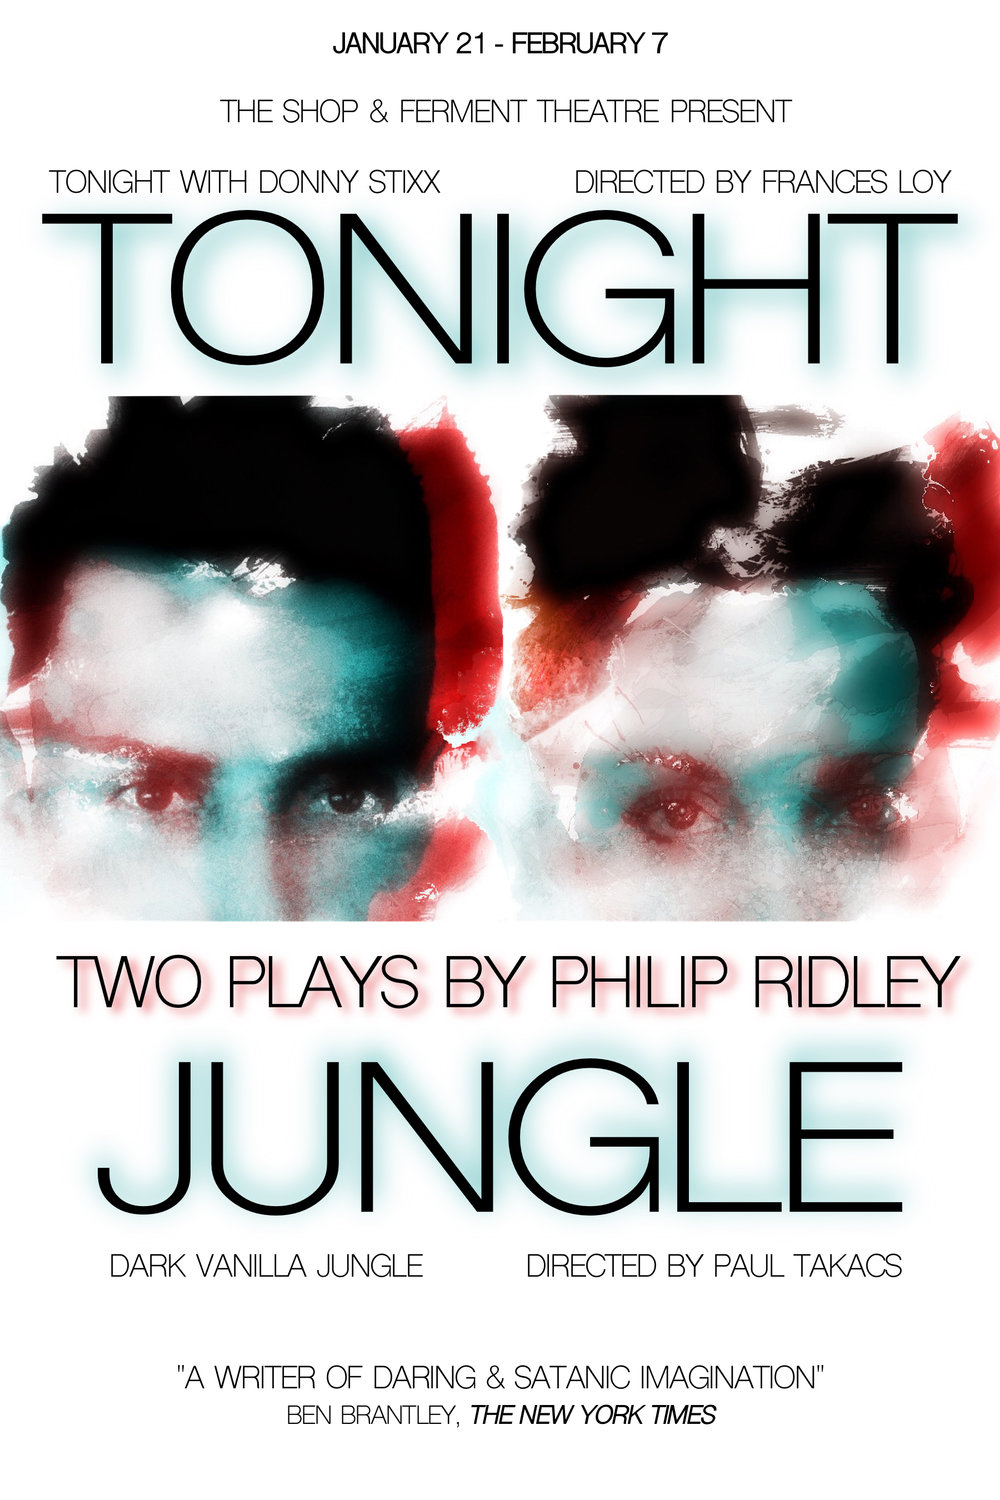 TONIGHT:JUNGLE POSTCARD FRONT.jpg